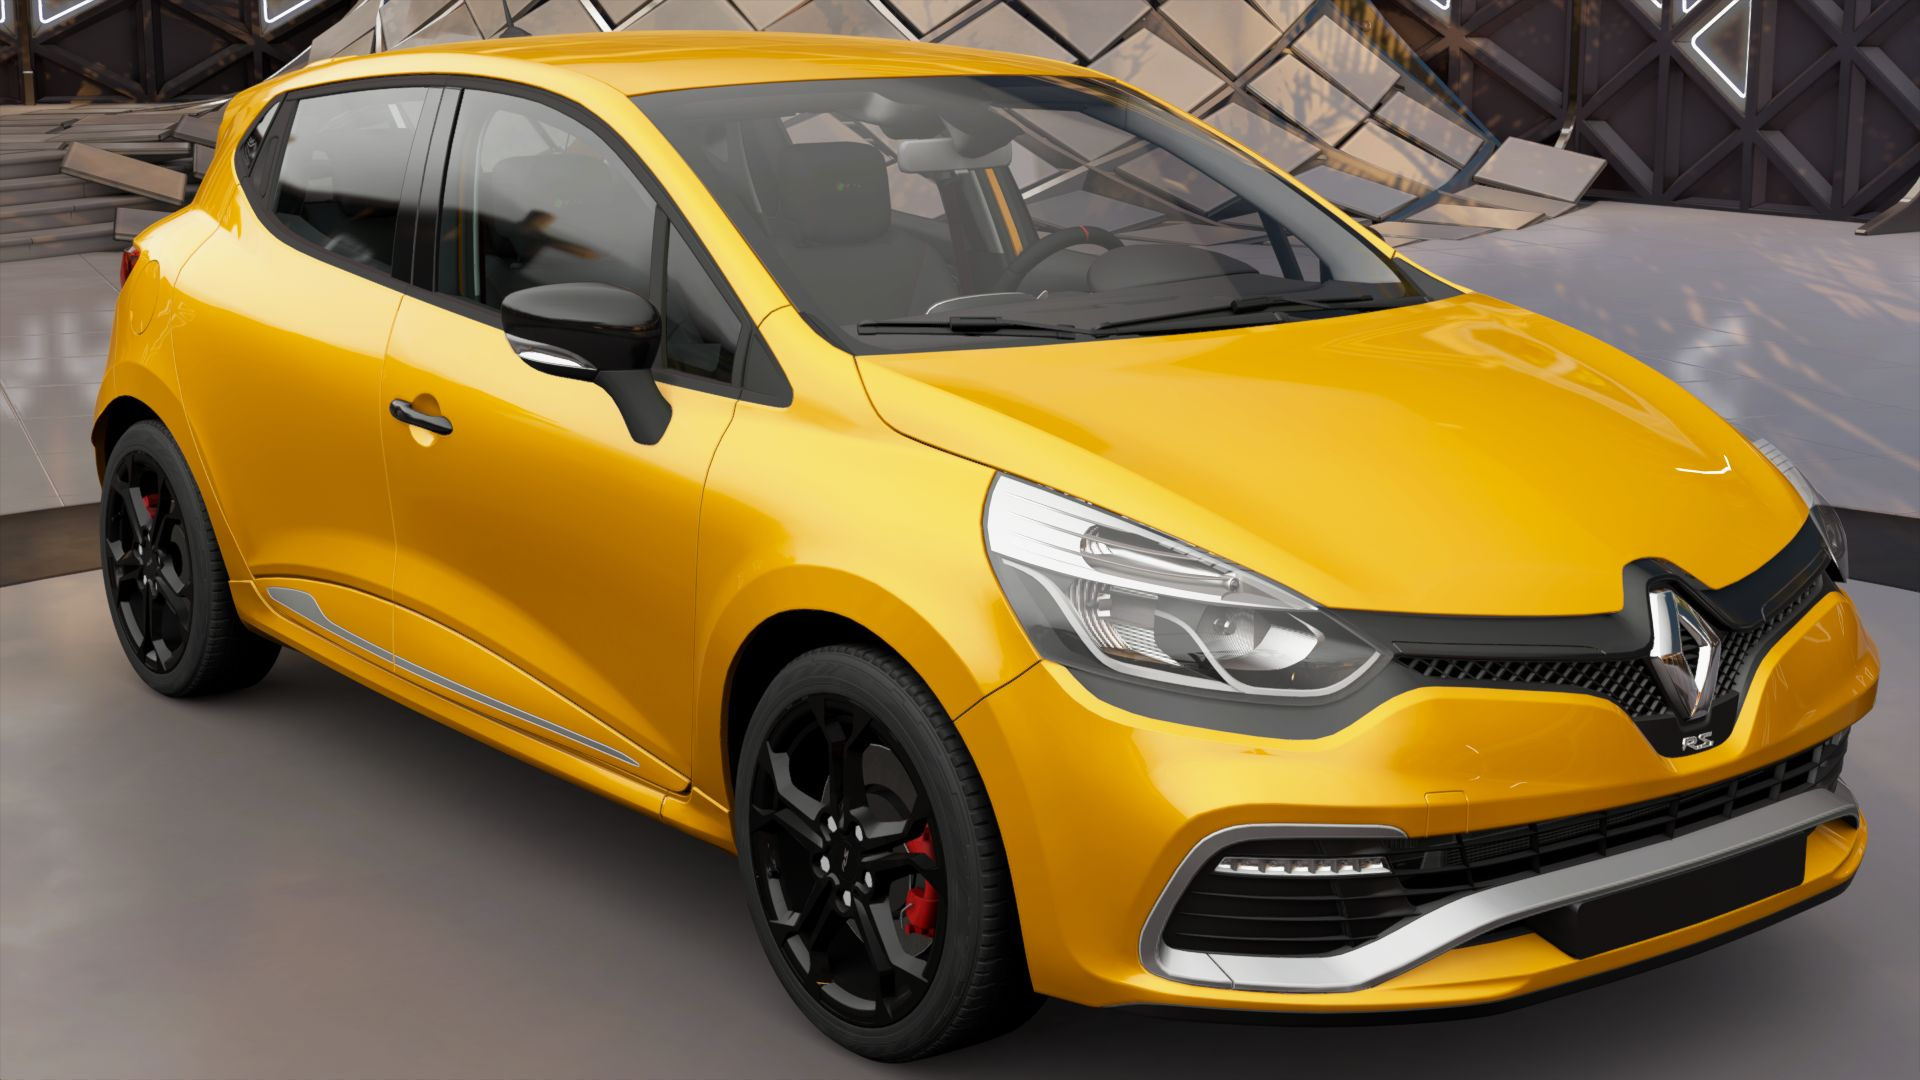 renault clio r s 200 edc forza motorsport wiki fandom. Black Bedroom Furniture Sets. Home Design Ideas